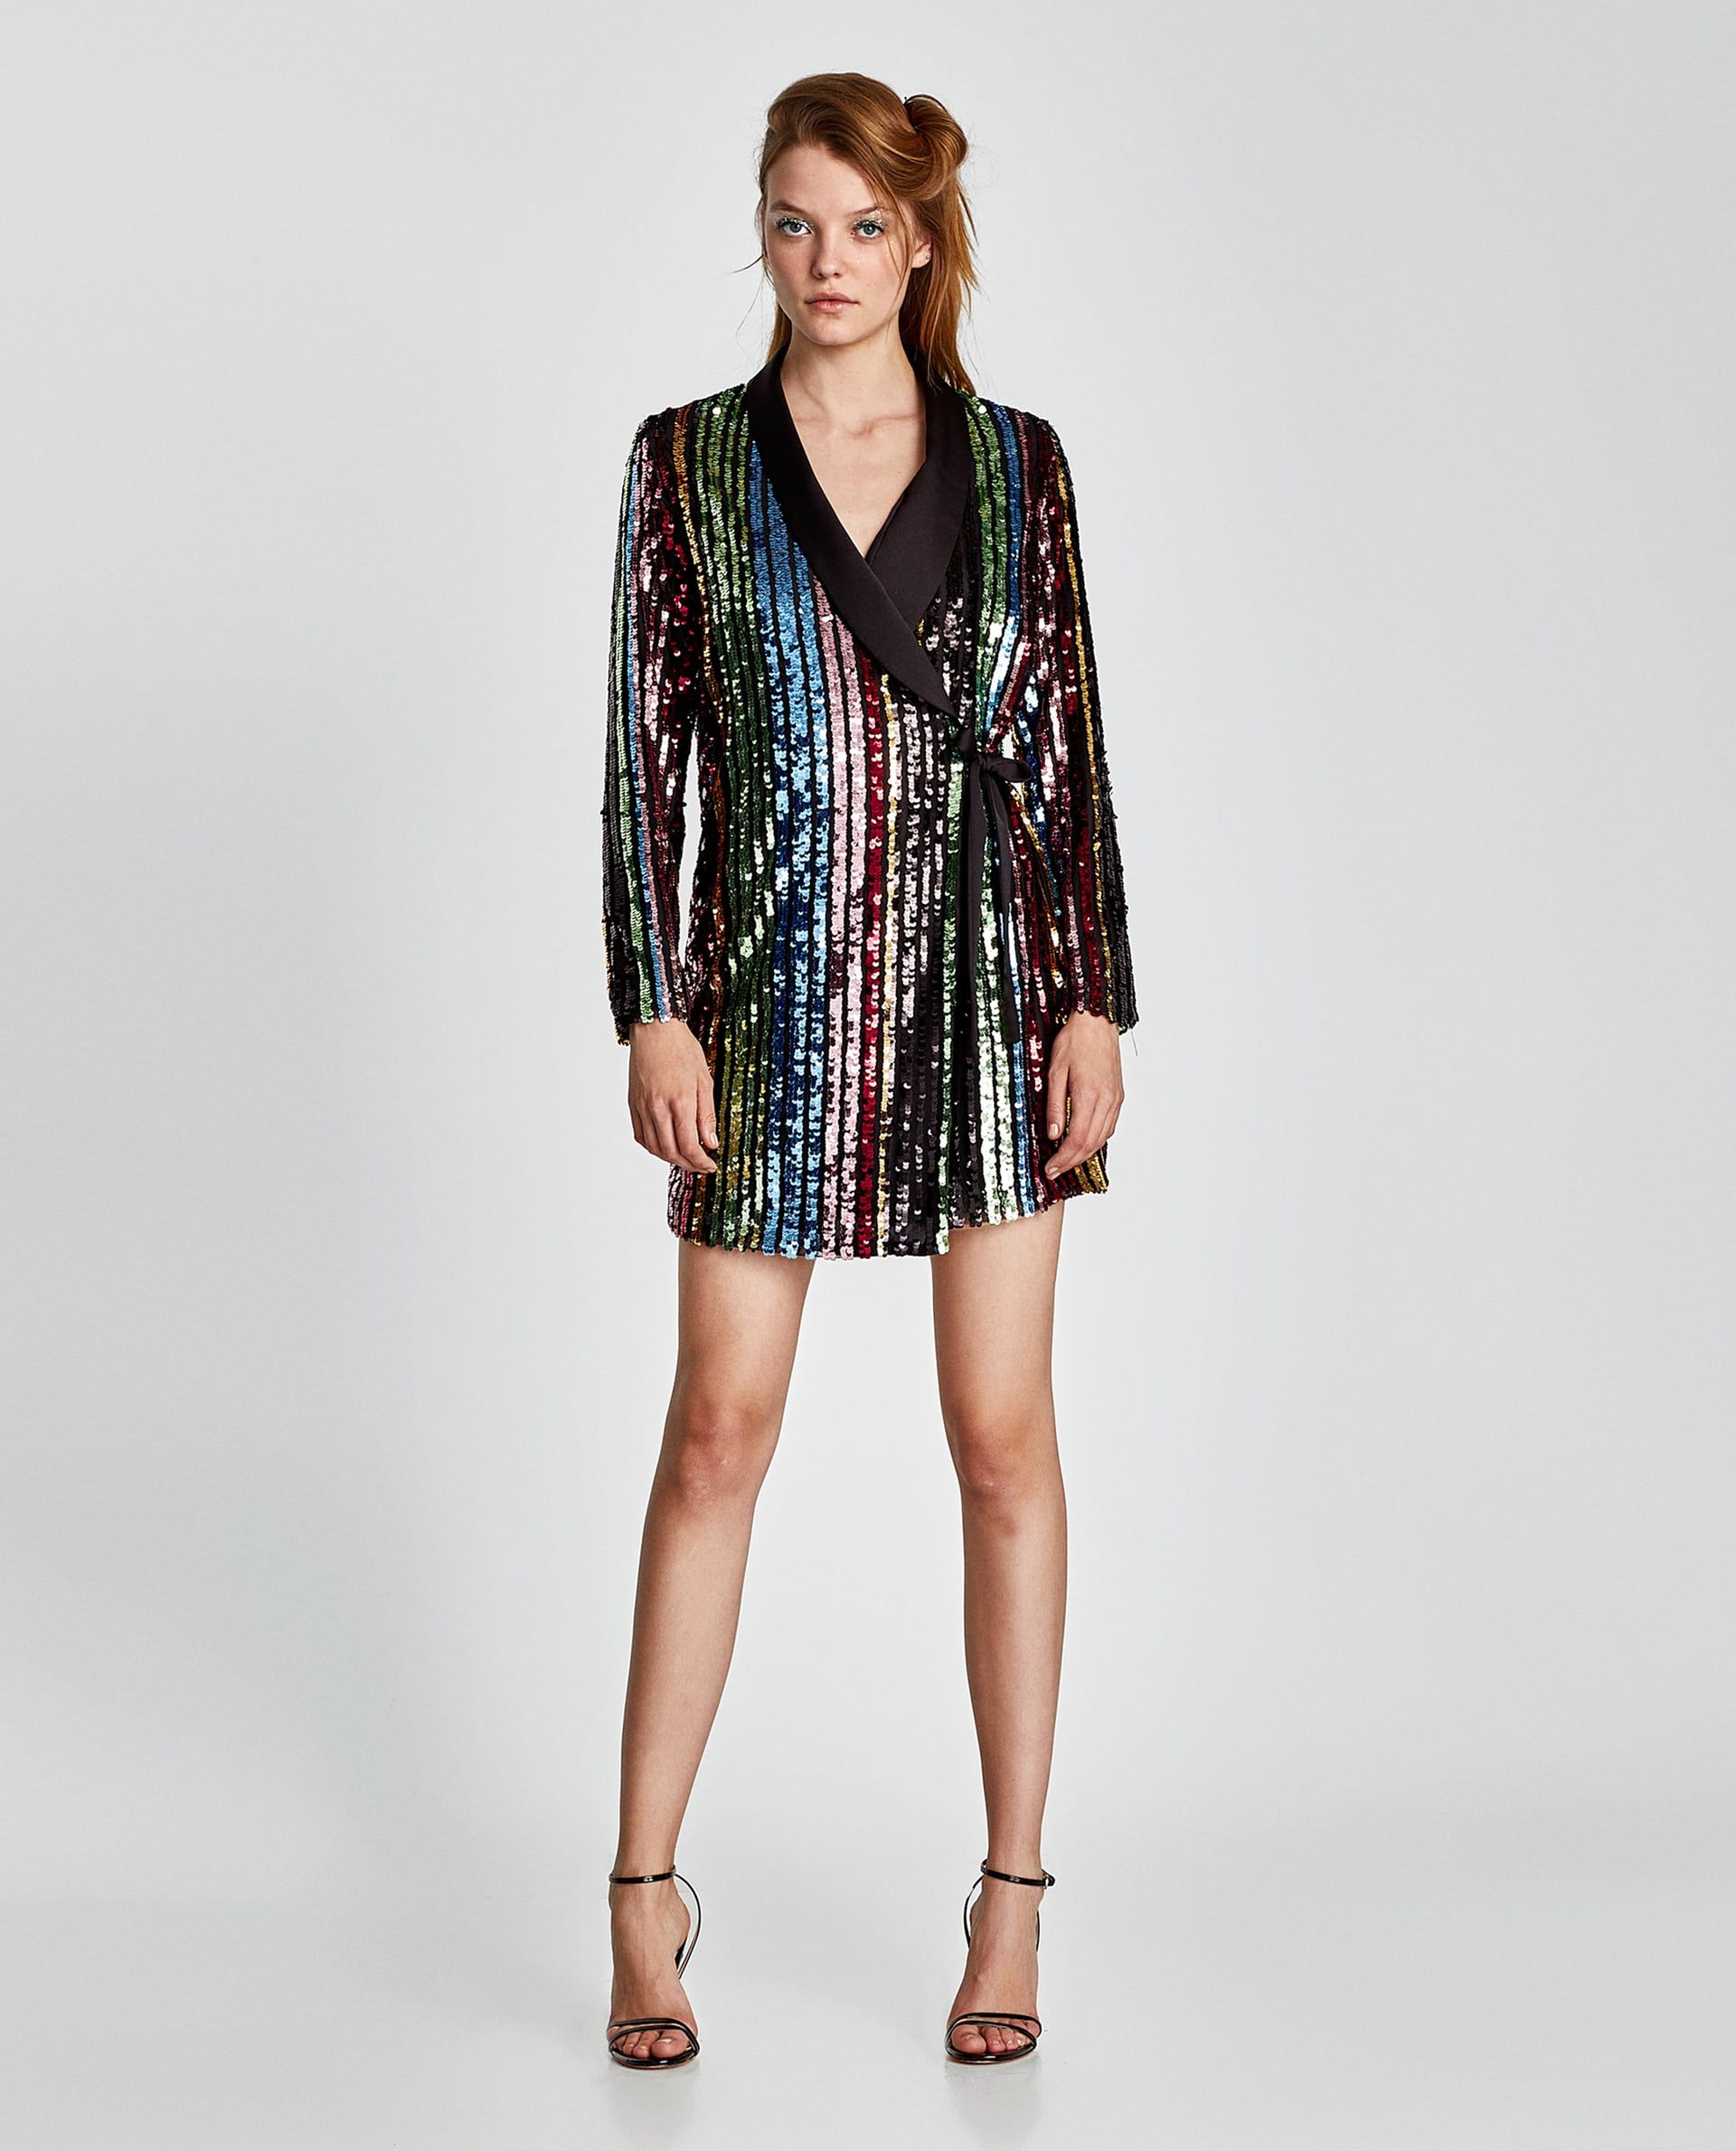 0eed3d5b6d18f ZARA - WOMAN - MULTICOLORED SEQUIN WRAP DRESS